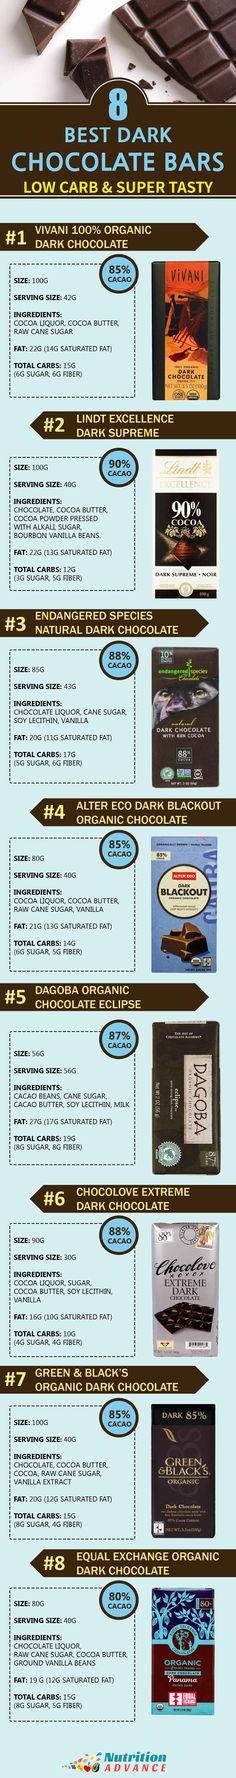 Low Carb Dark Chocolate - 8 of the best dark chocolate bars, low in carbs and high in nutrients and taste!